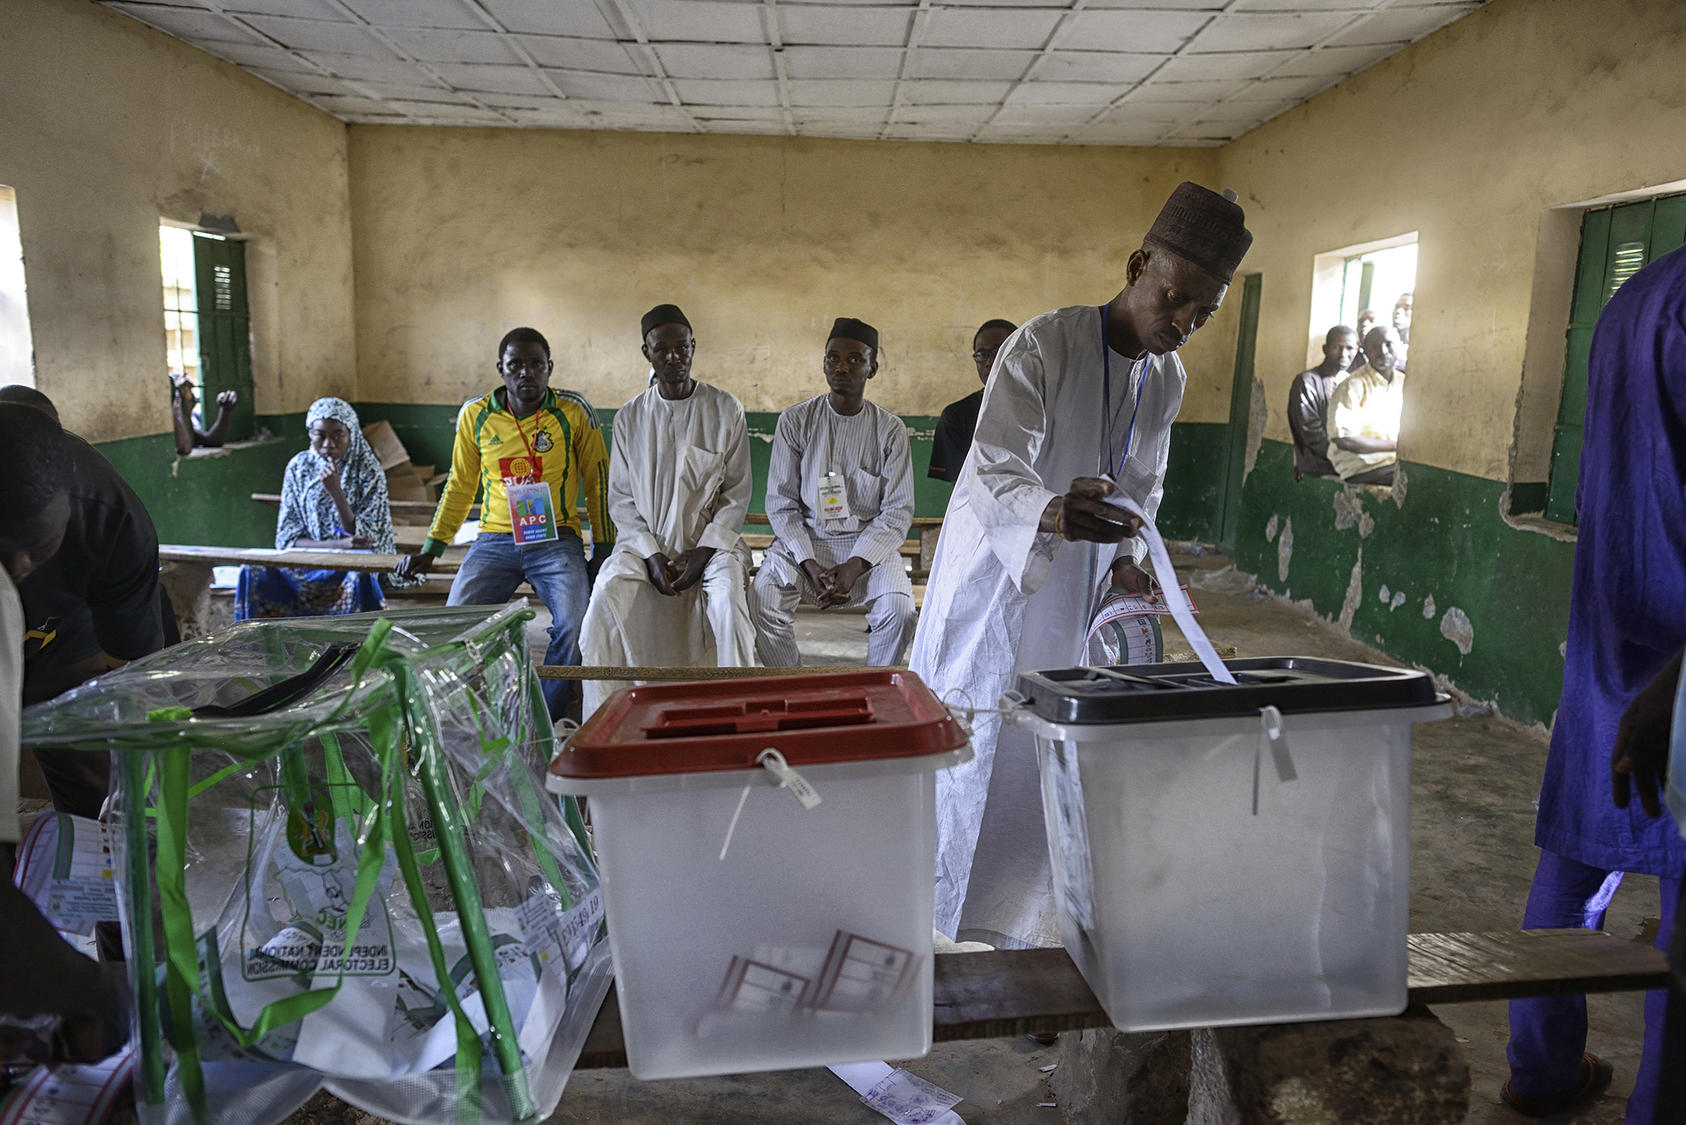 A man votes at a polling station in Kano, Nigeria, March 28, 2015. (Samuel Aranda/The New York Times)